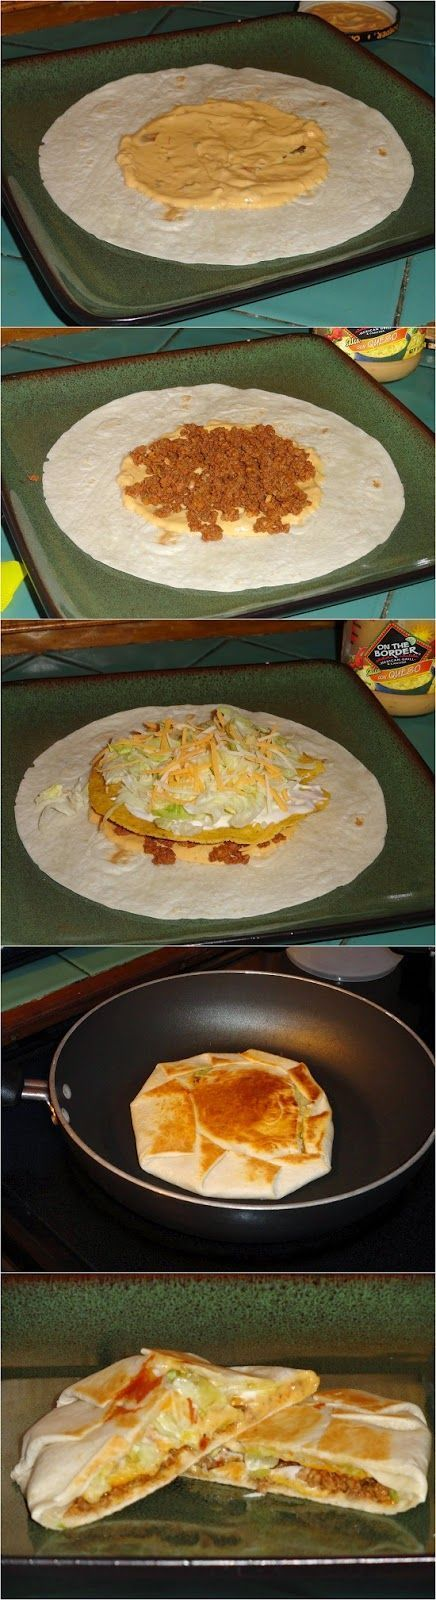 Homemade Taco Bell Crunchwrap. Make your own today at with with this copycat recipe from CopyKat.com.